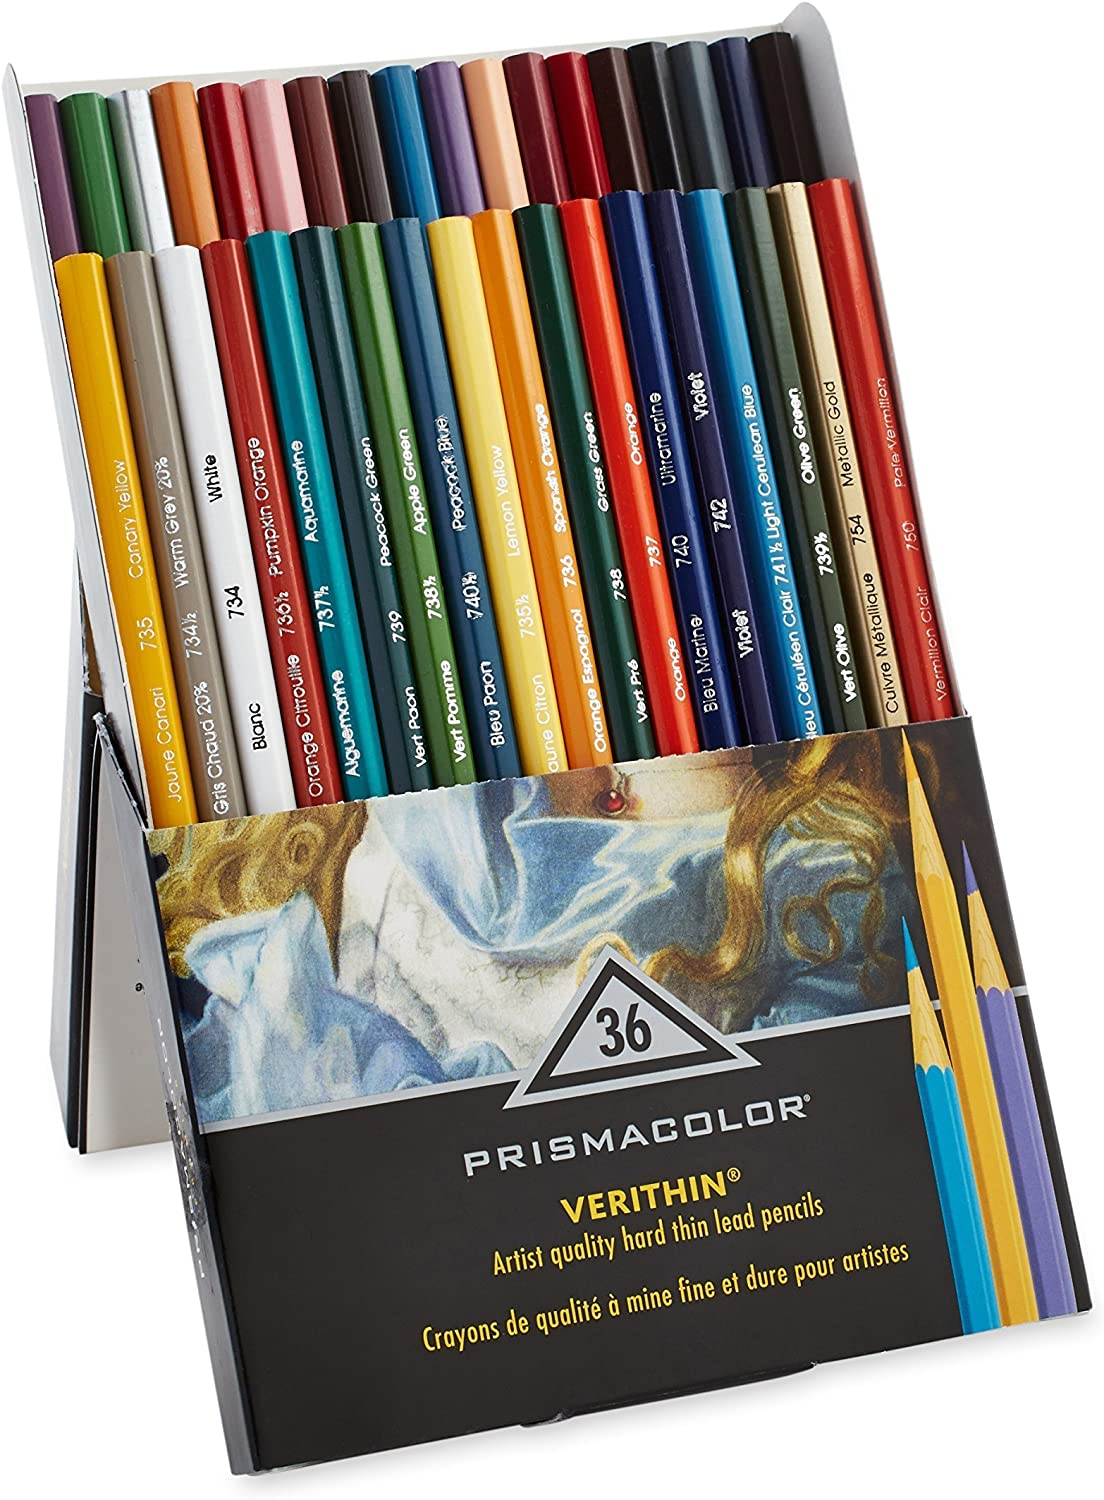 Prismacolor Premier Verithin Colored Pencils, Assorted Colors, 36 Pencils, Pack of 1 Box (2428) : Wood Colored Pencils : Office Products